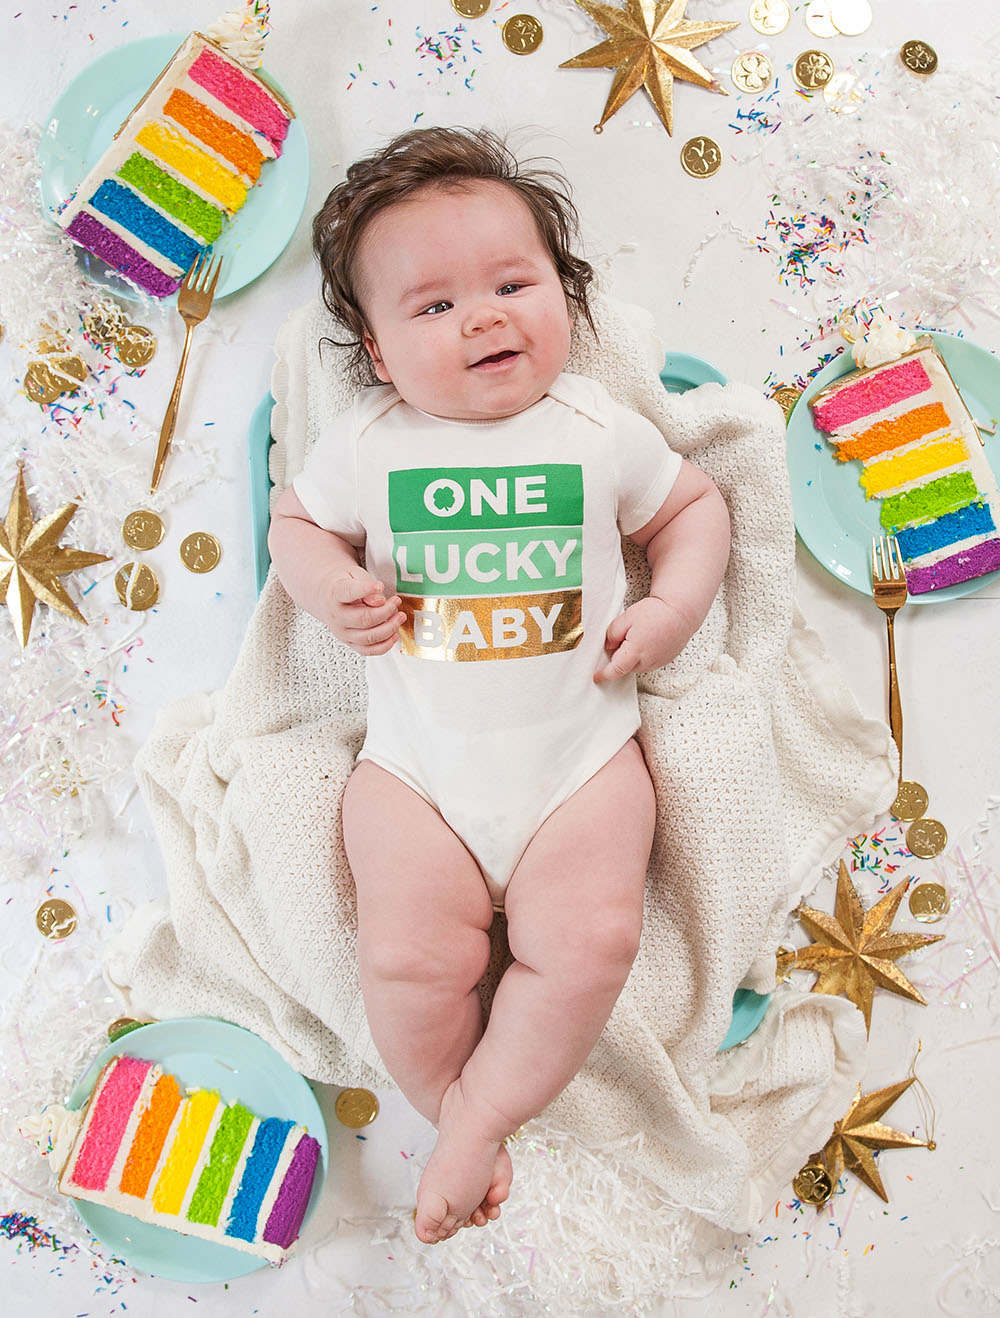 6 month old baby boy on white background with rainbow cake slices around him